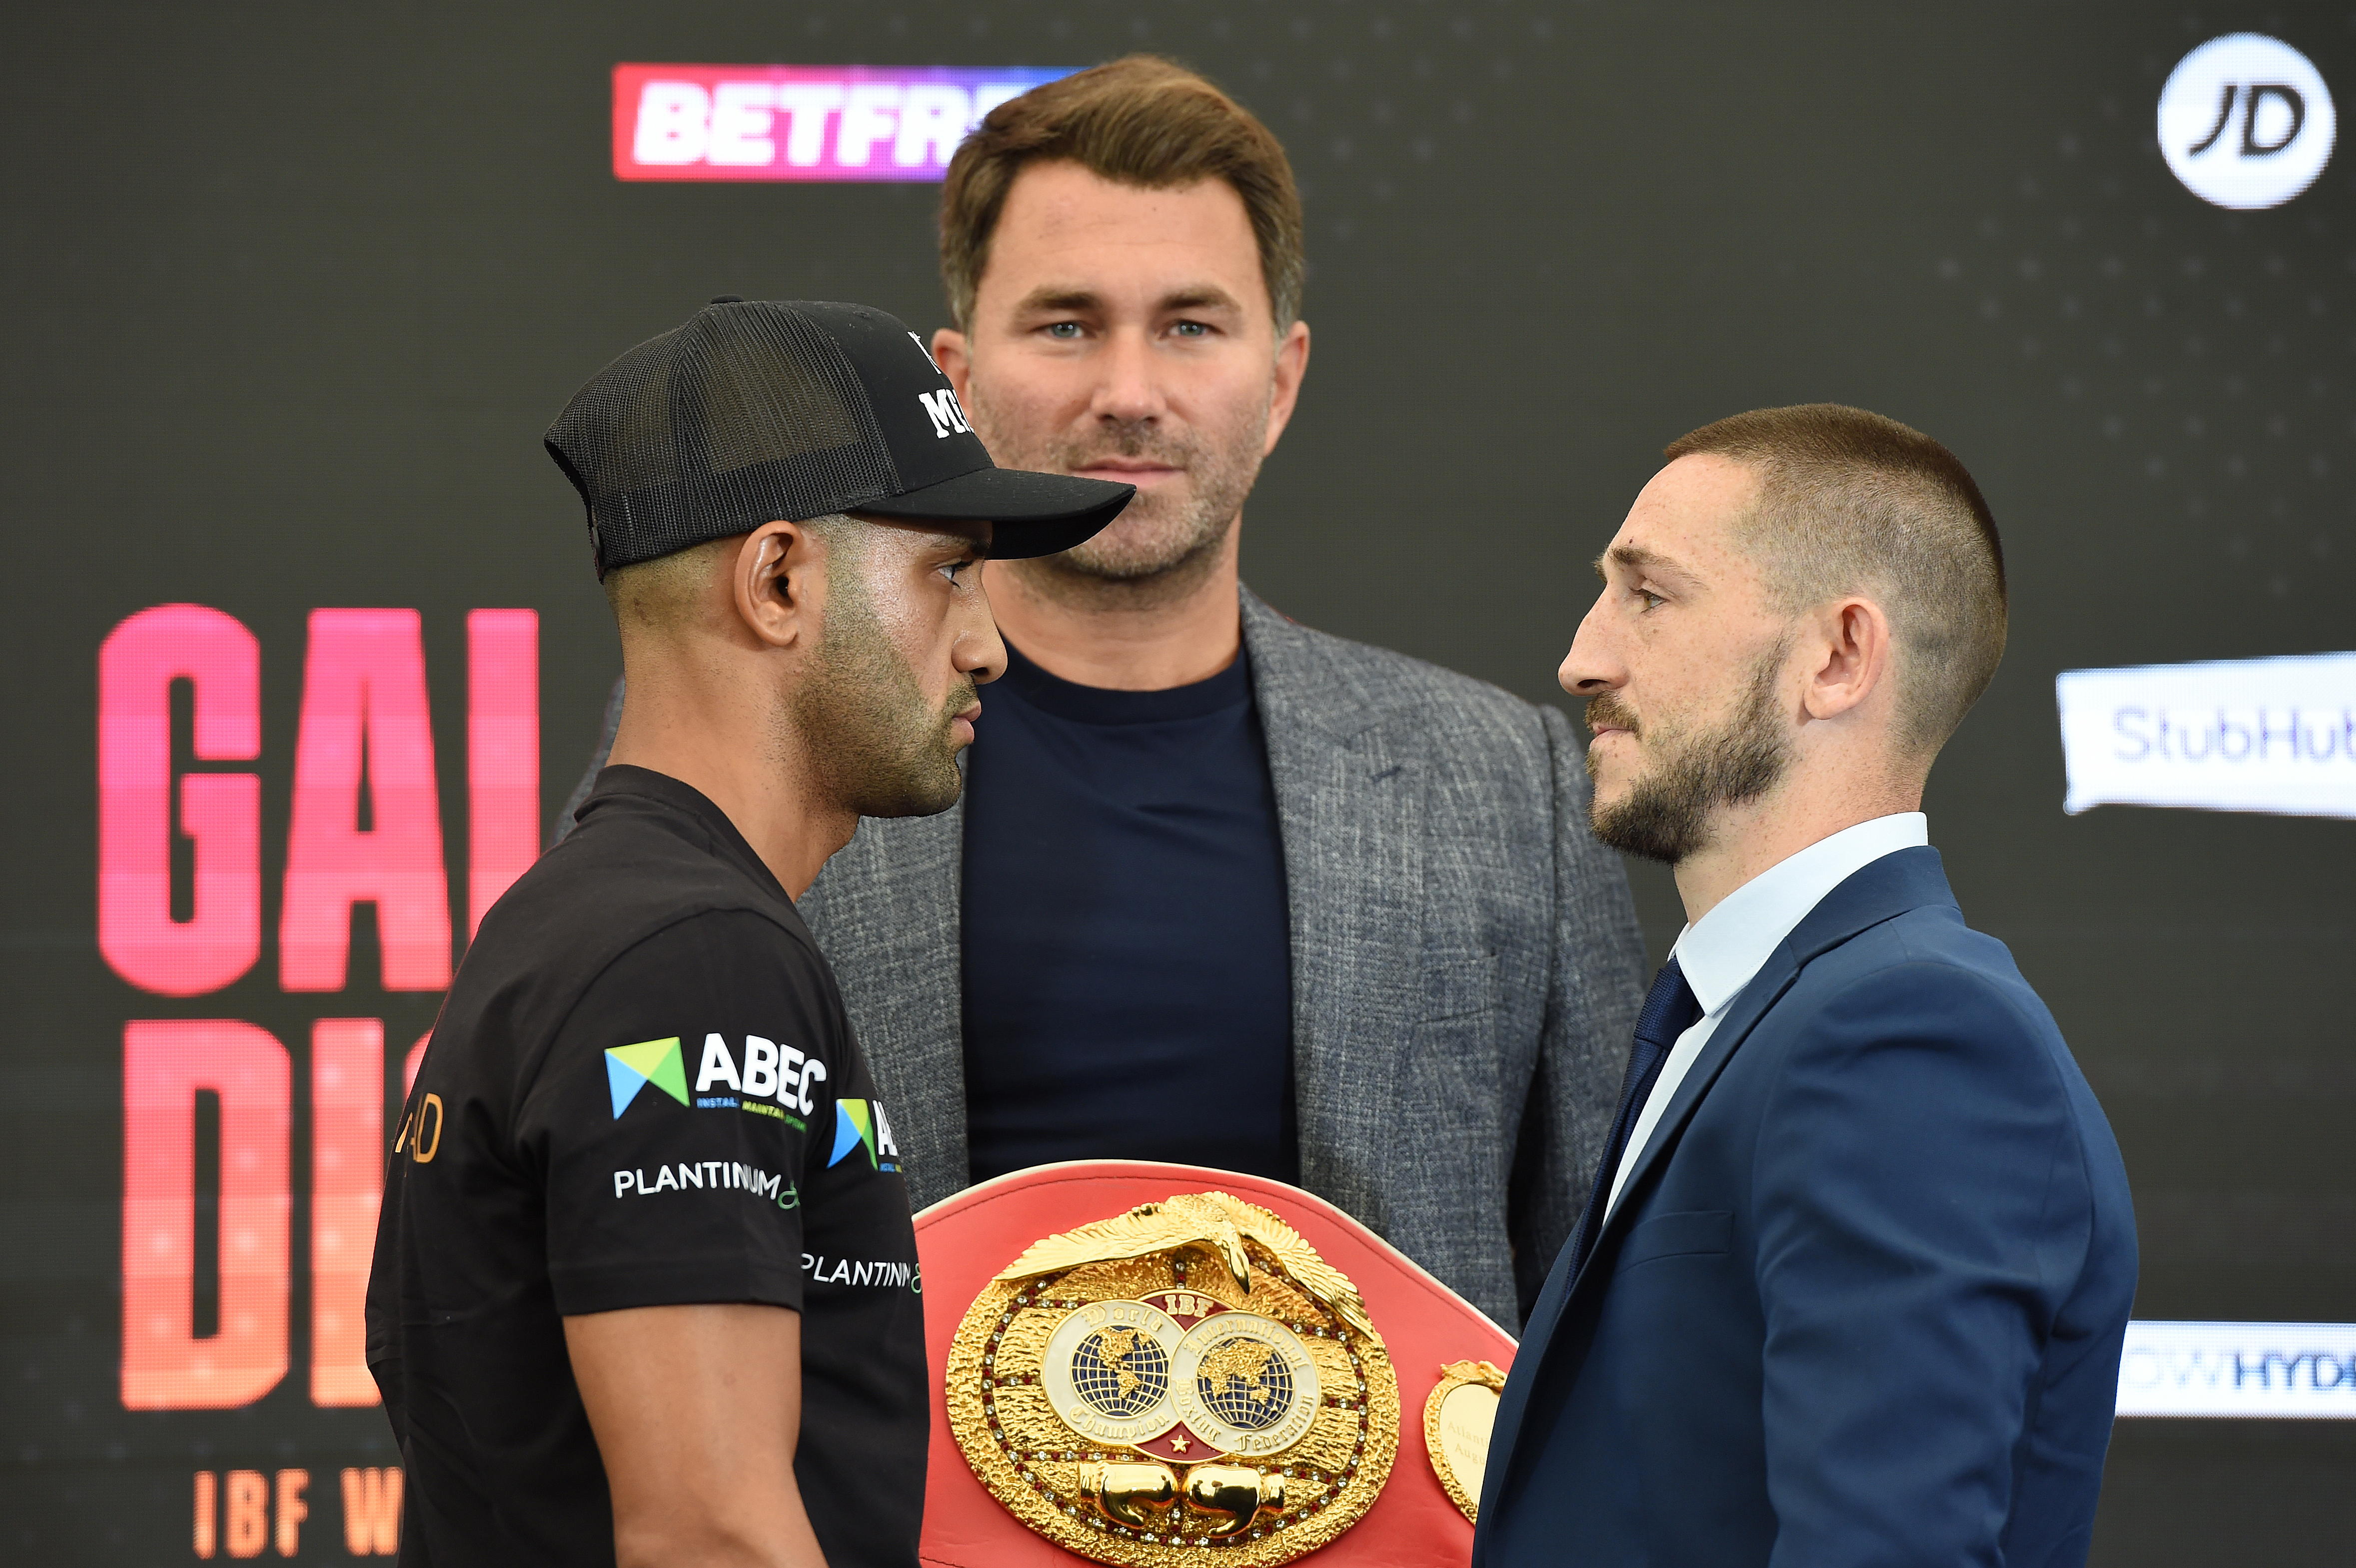 Kid Galahad and James Dickens face off ahead of their IBF World Featherweight Title fight on August 5, 2021 in Brentwood, England.